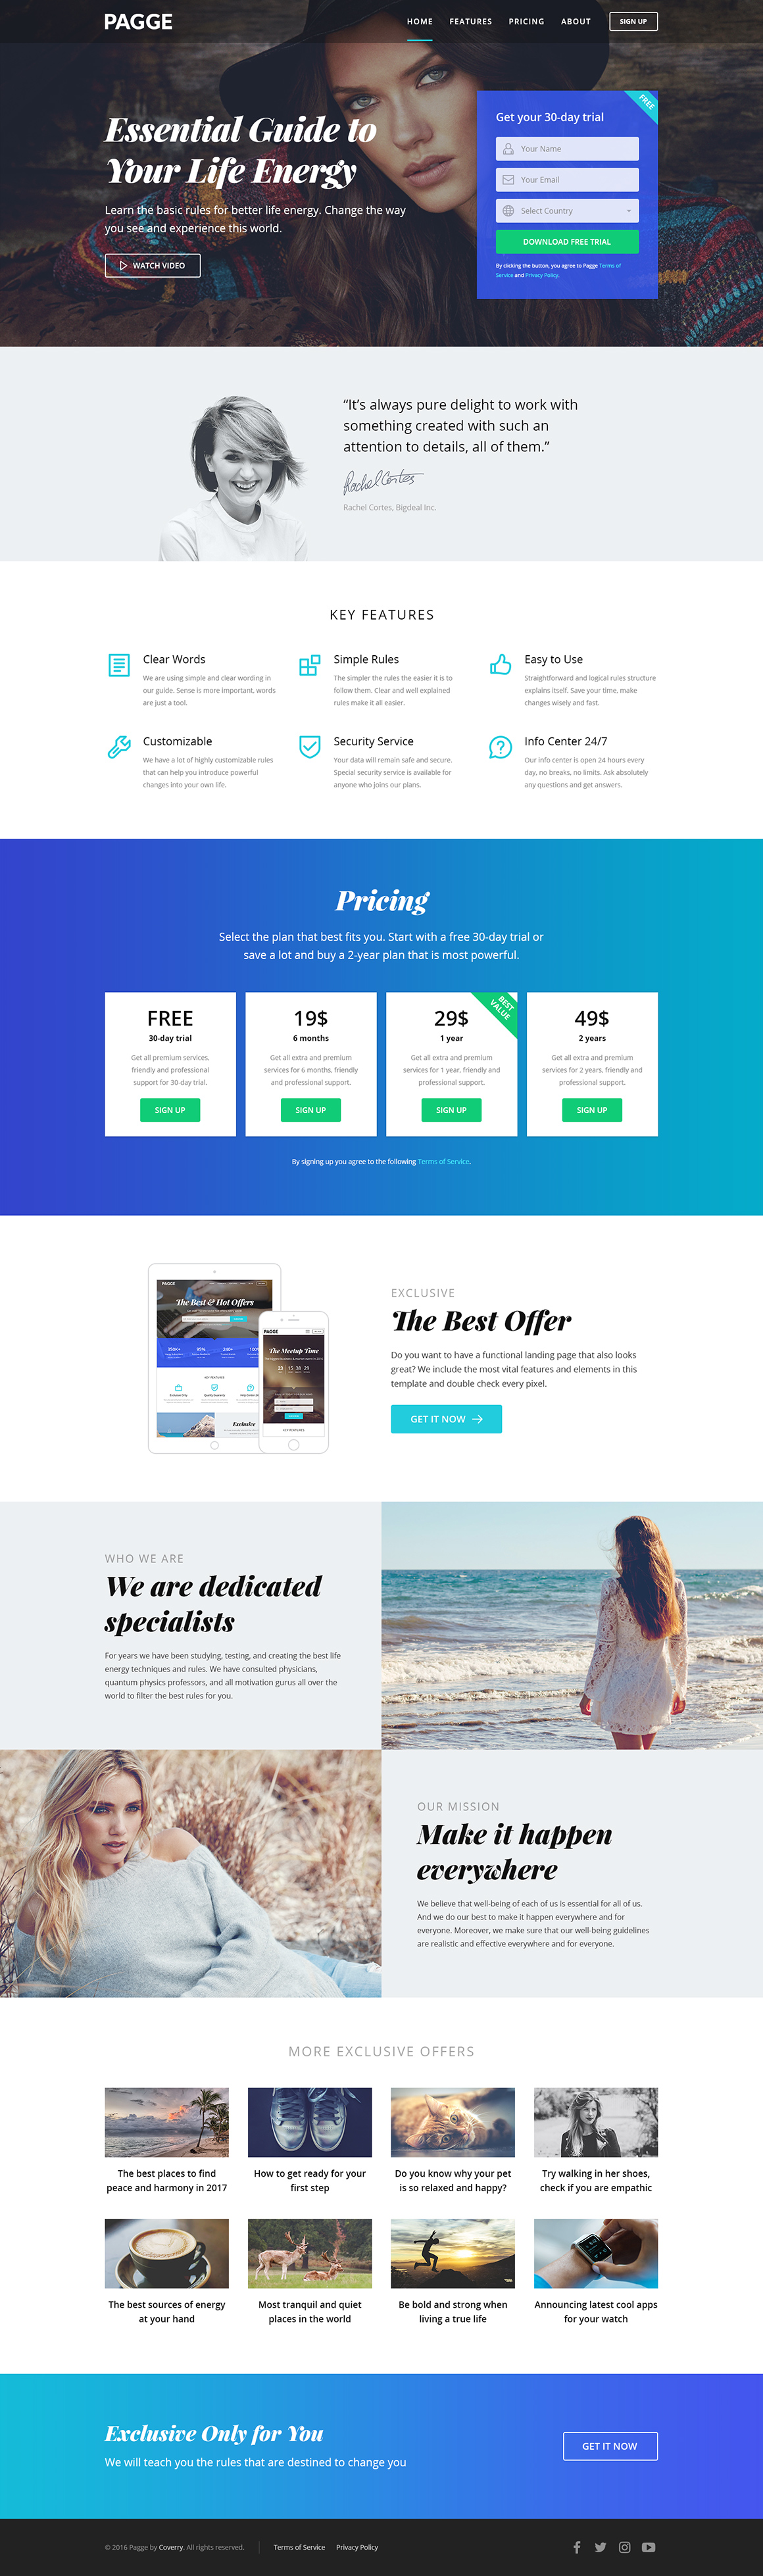 Pagge - Landing Page HTML Templates by coverry | ThemeForest